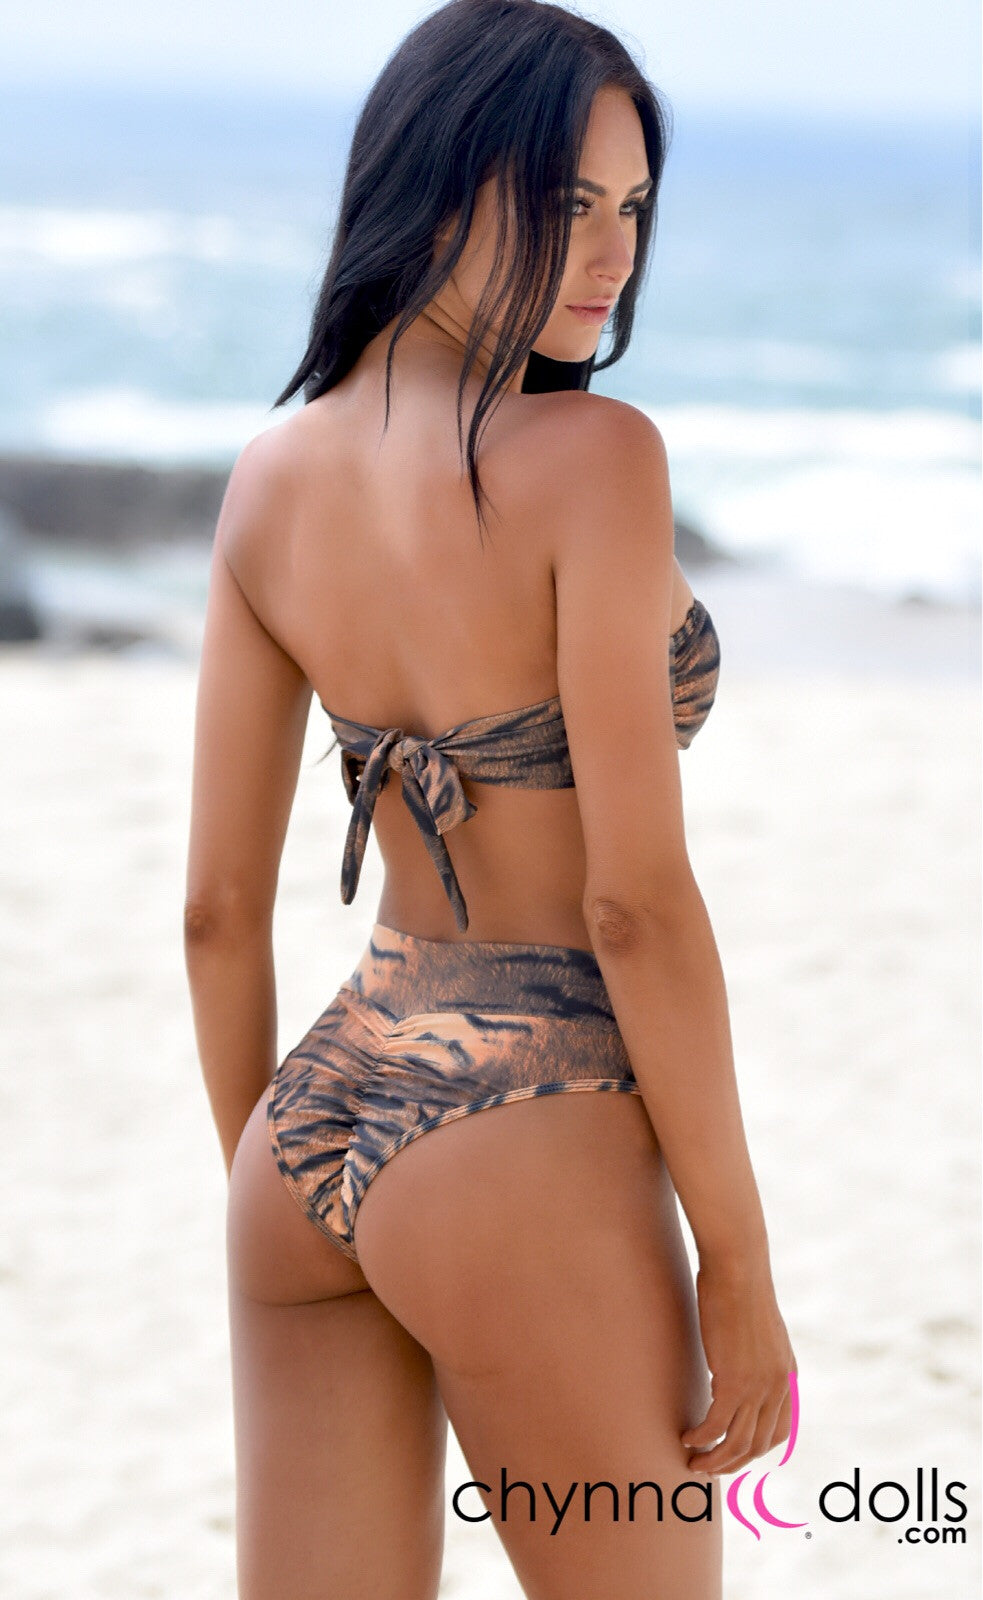 Soho: High Waisted Bottom w/ 2 Top Option in Tiger - Chynna Dolls Swimwear